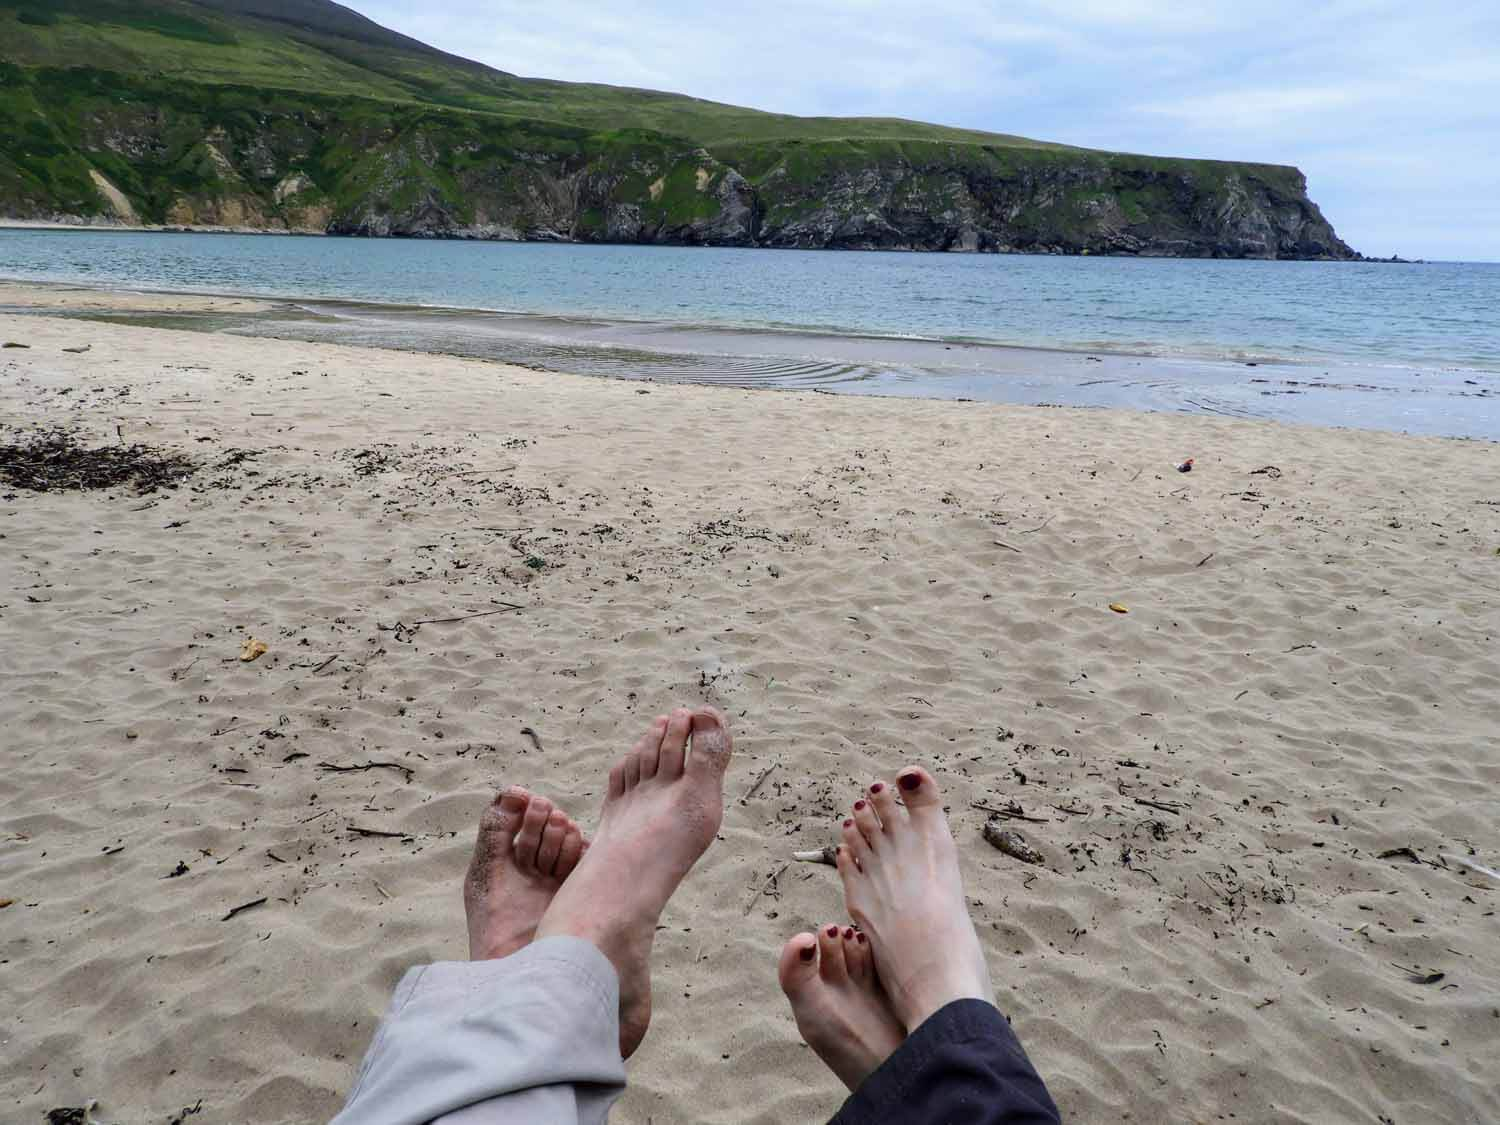 ireland-donegal-ireland-donegal-silver-strand-malin-beg-feet-team.jpg